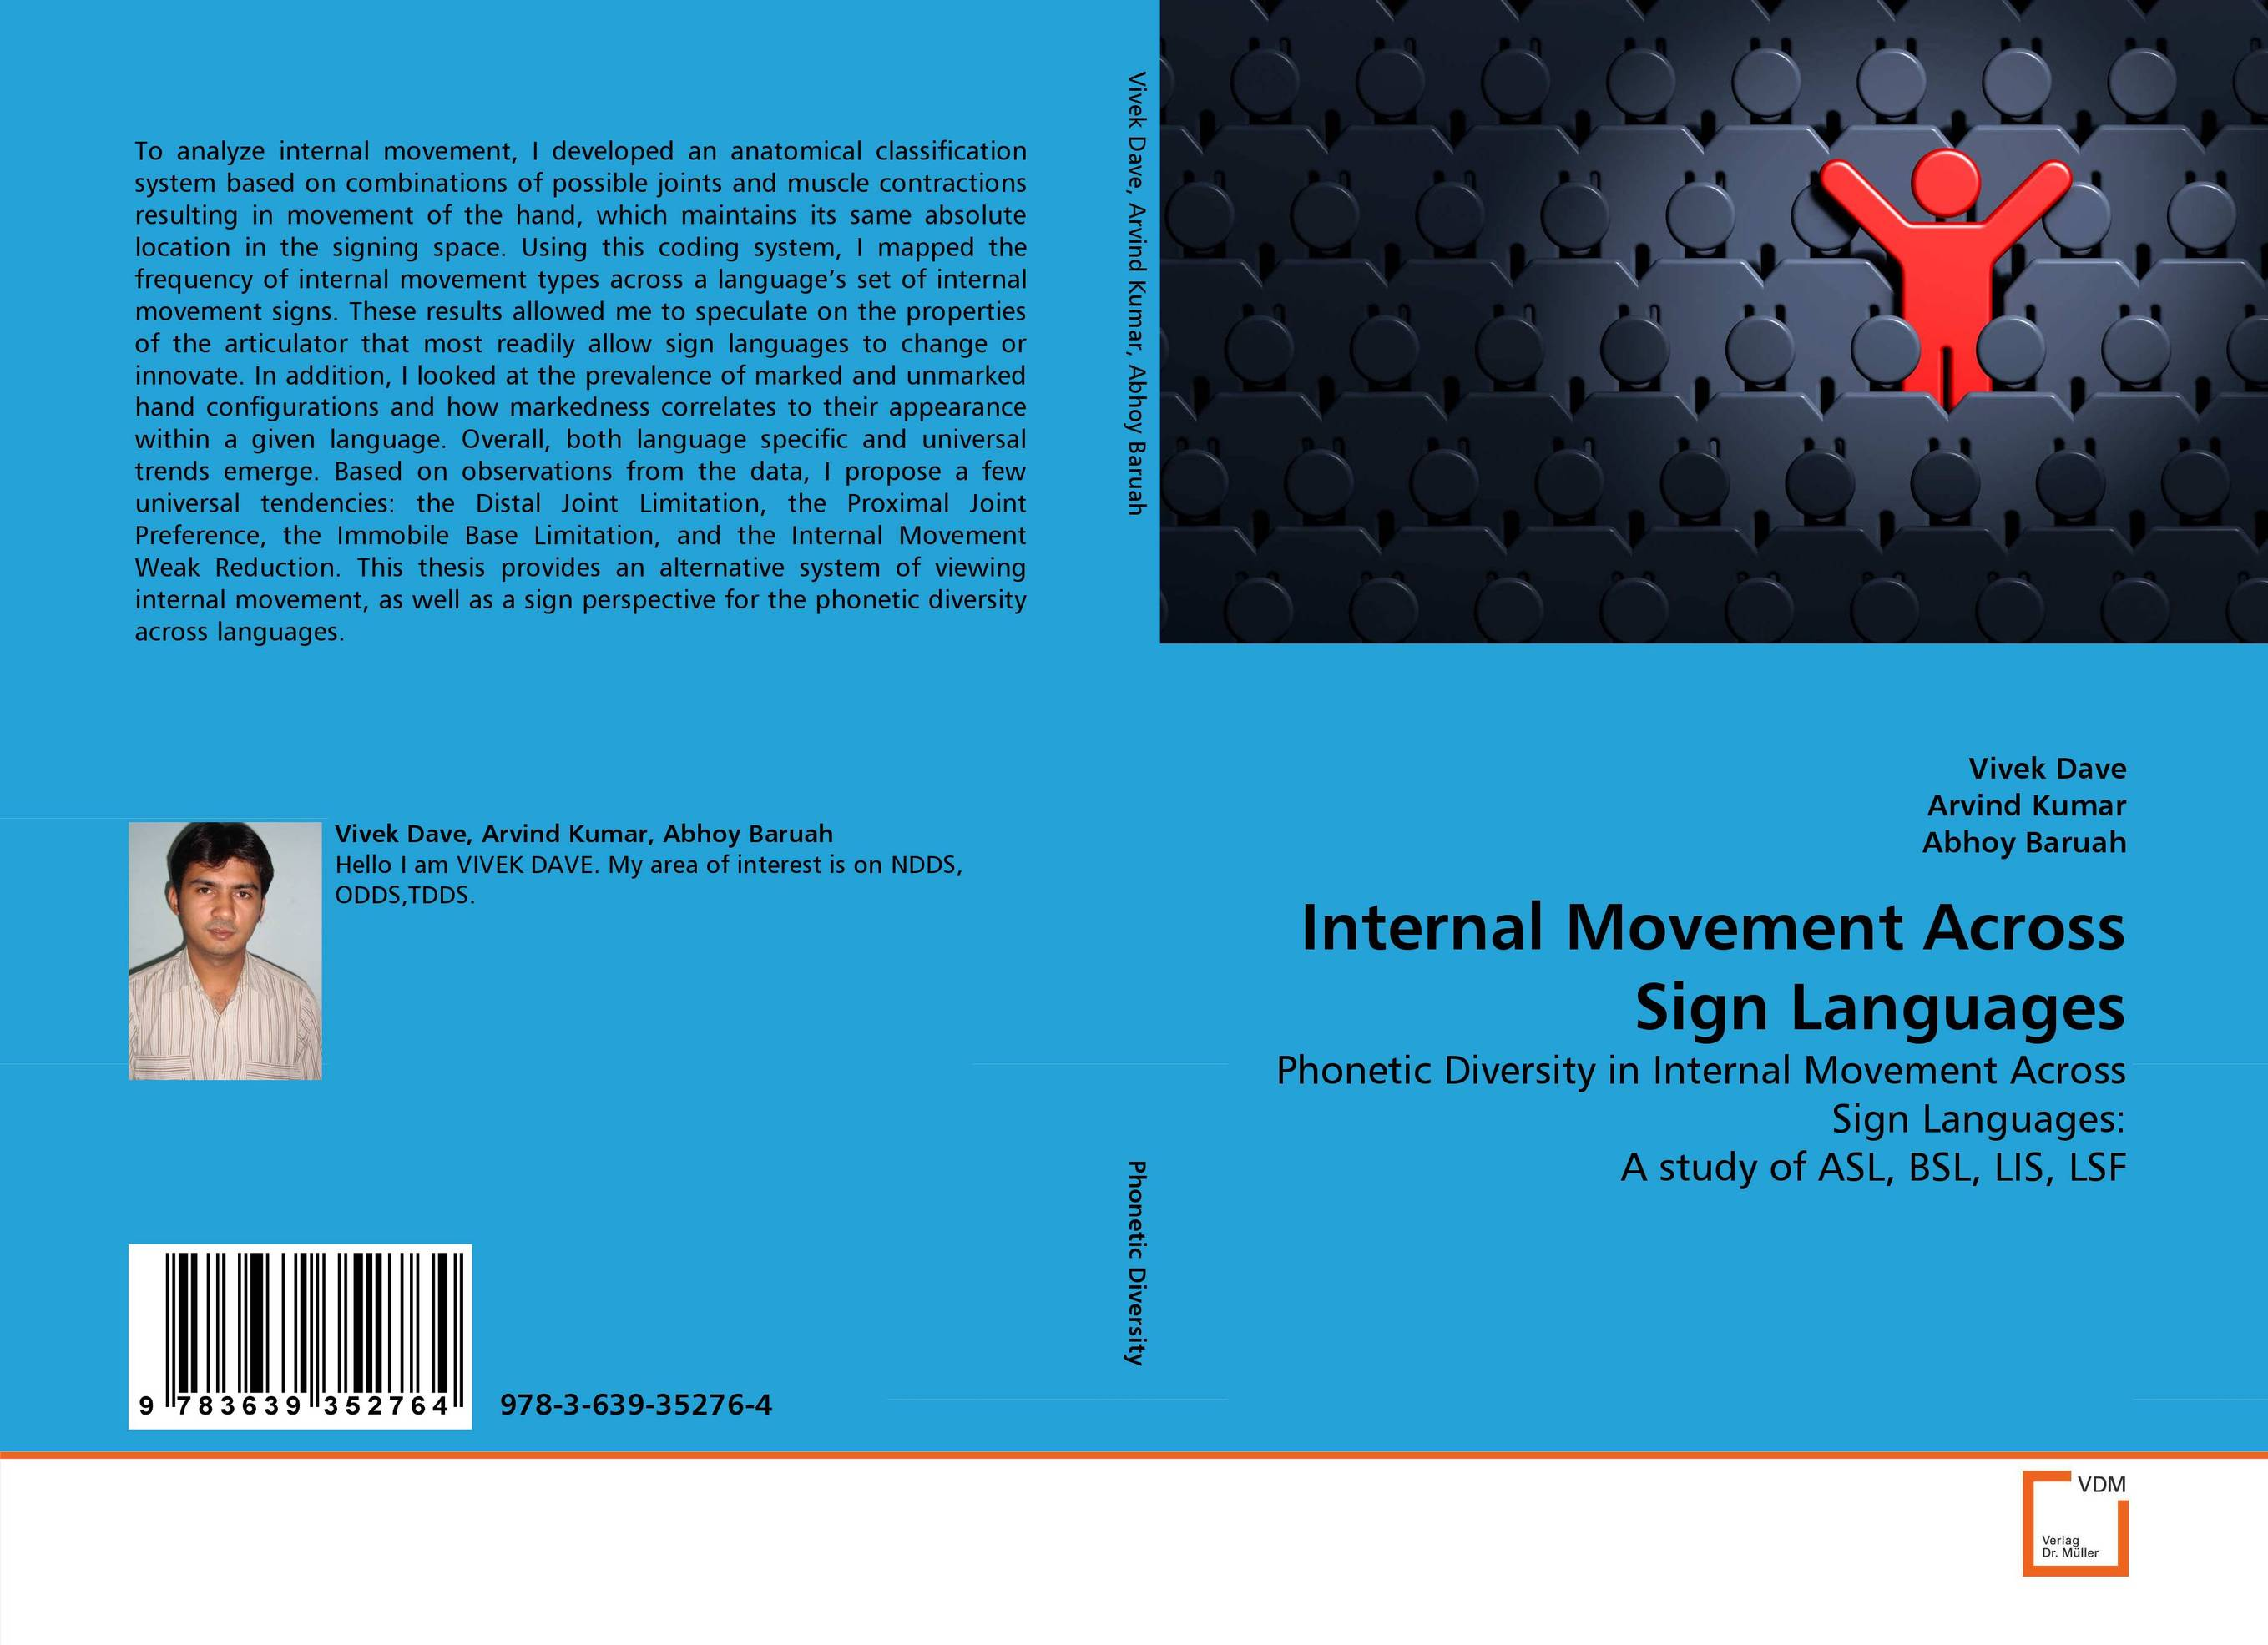 Internal Movement Across Sign Languages early signs of language shifting